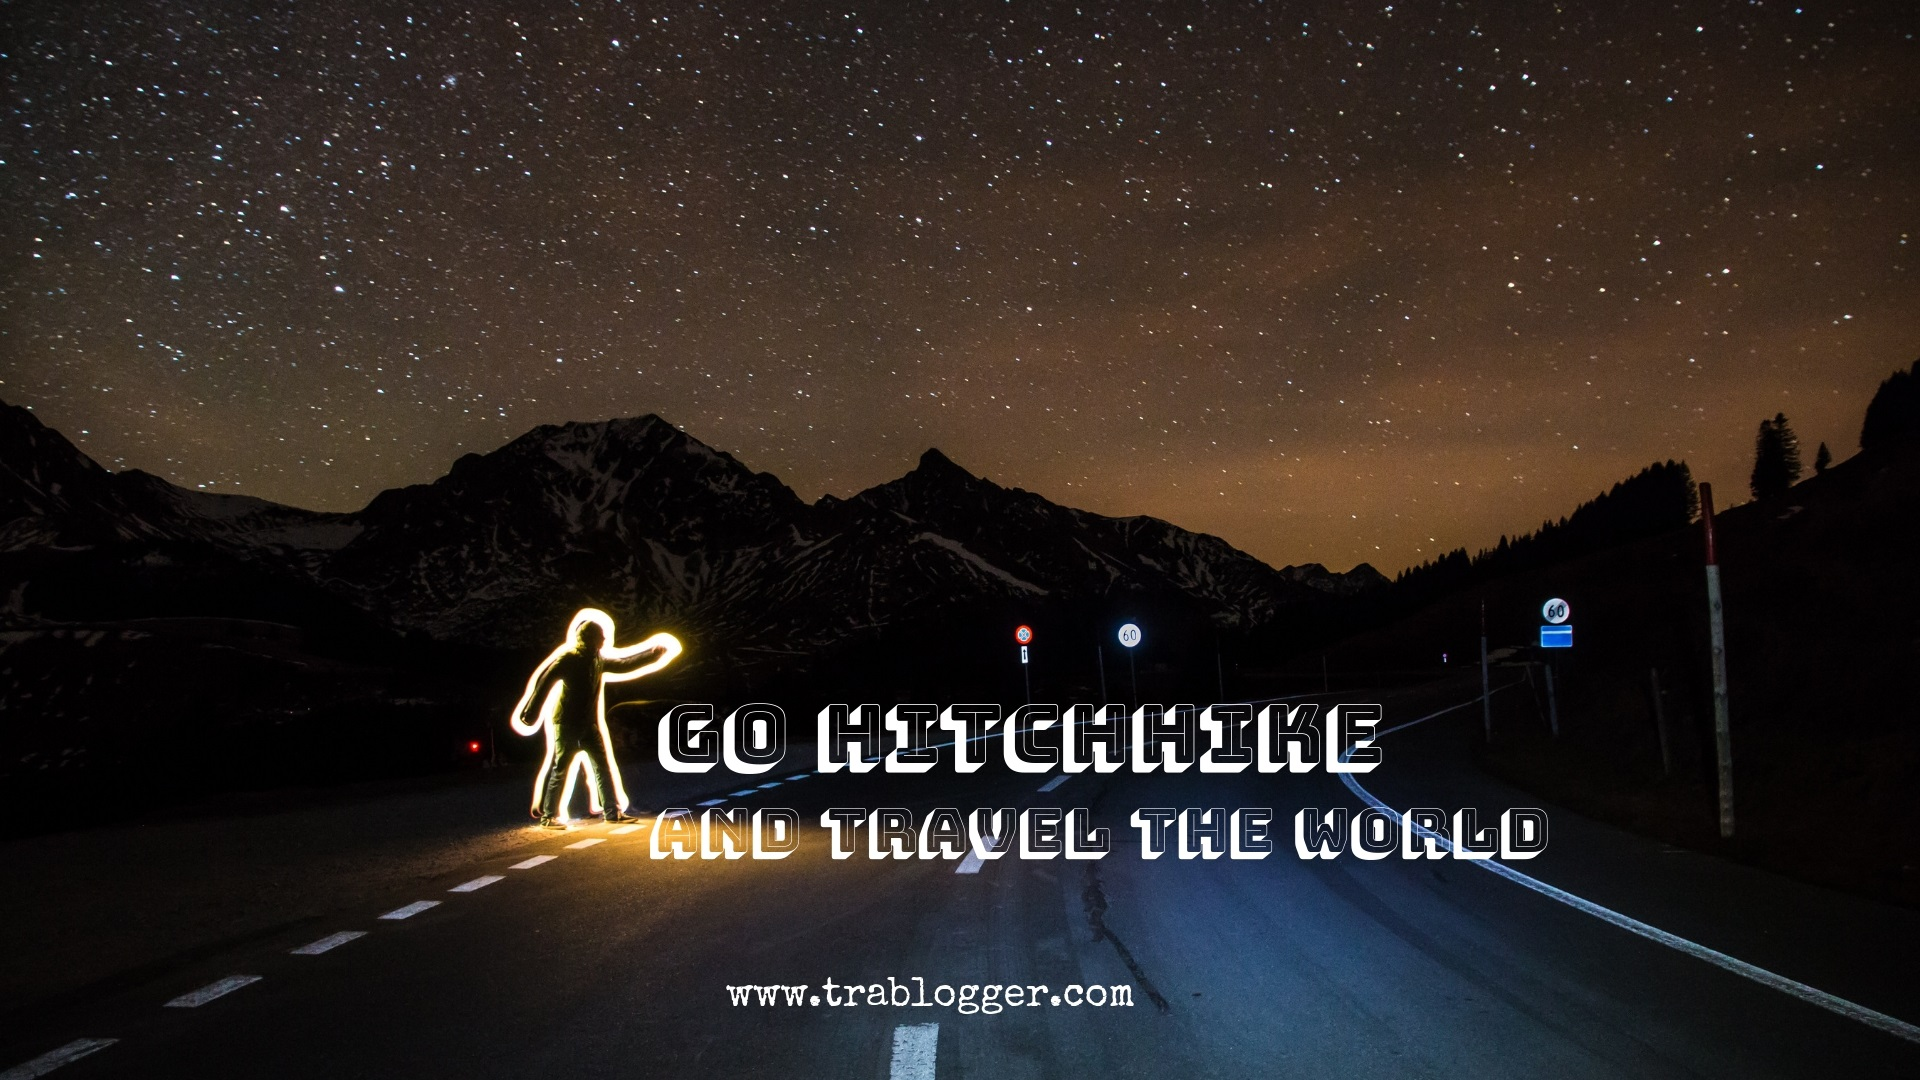 Go Hitchhike and travel the world